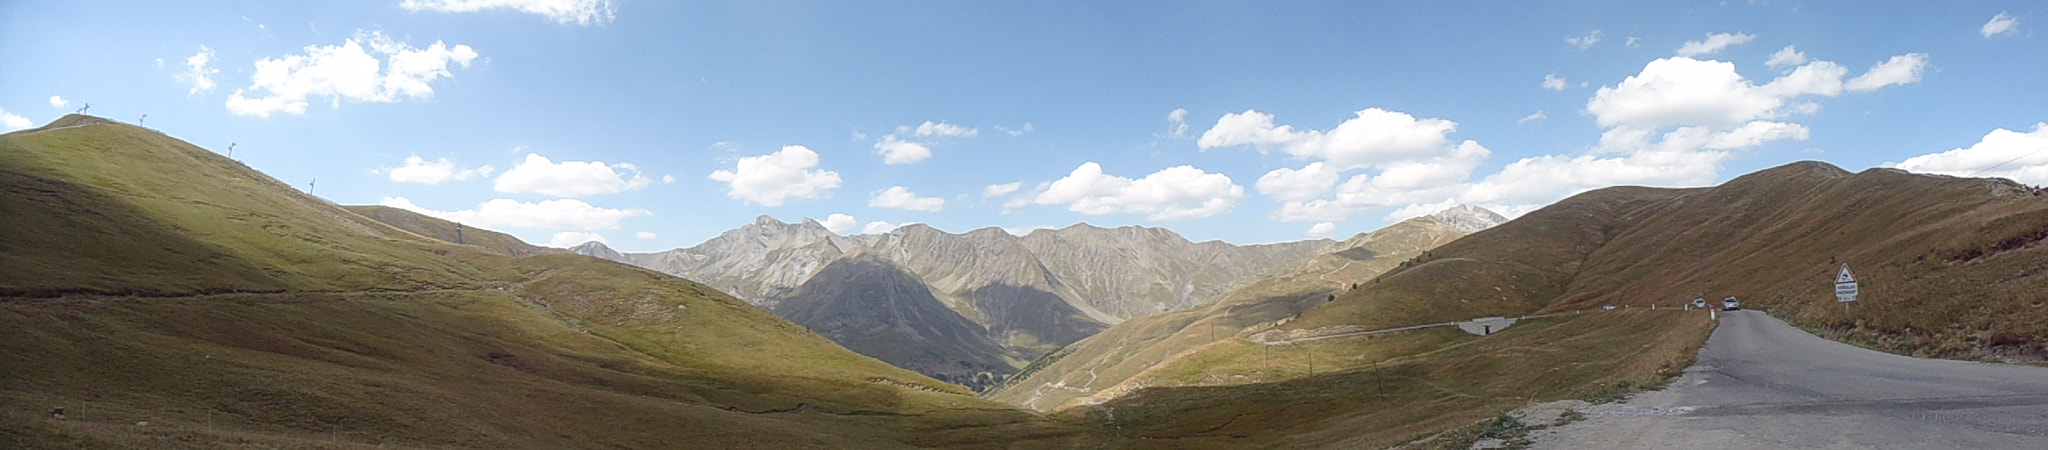 Photograph Col D'Allos by Patrick Beute on 500px